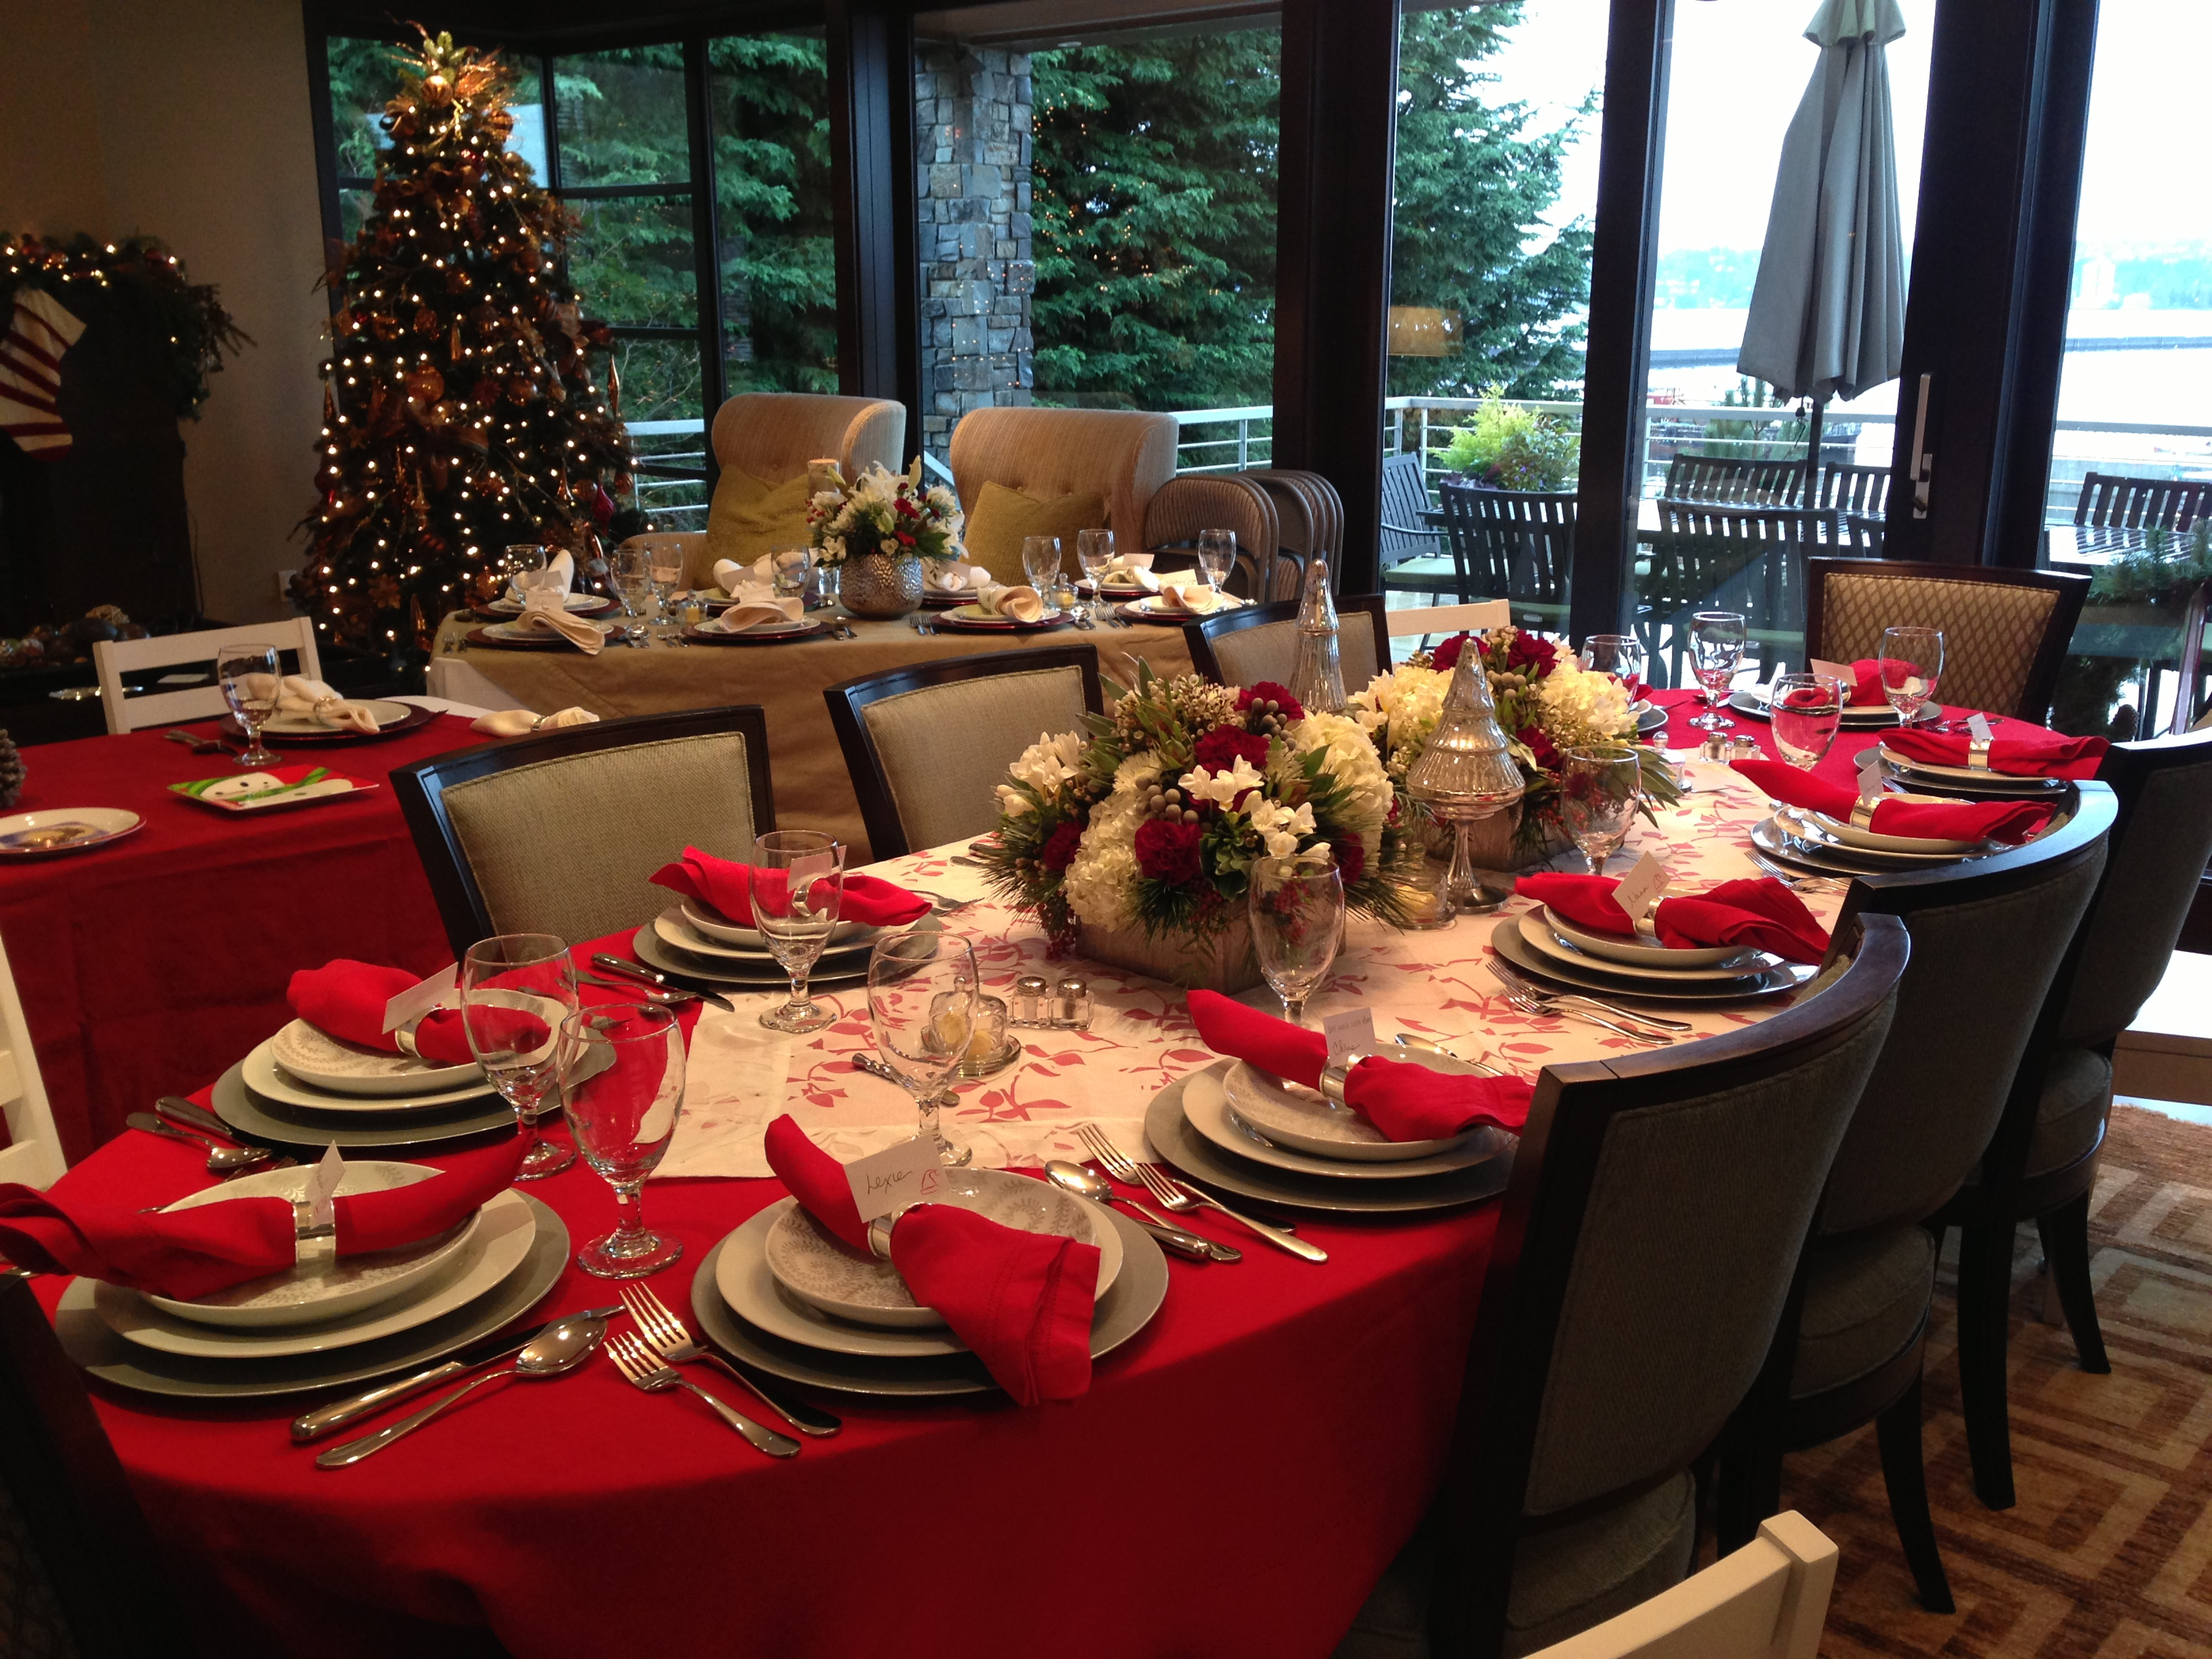 image of table set for christmas in red and silver theme